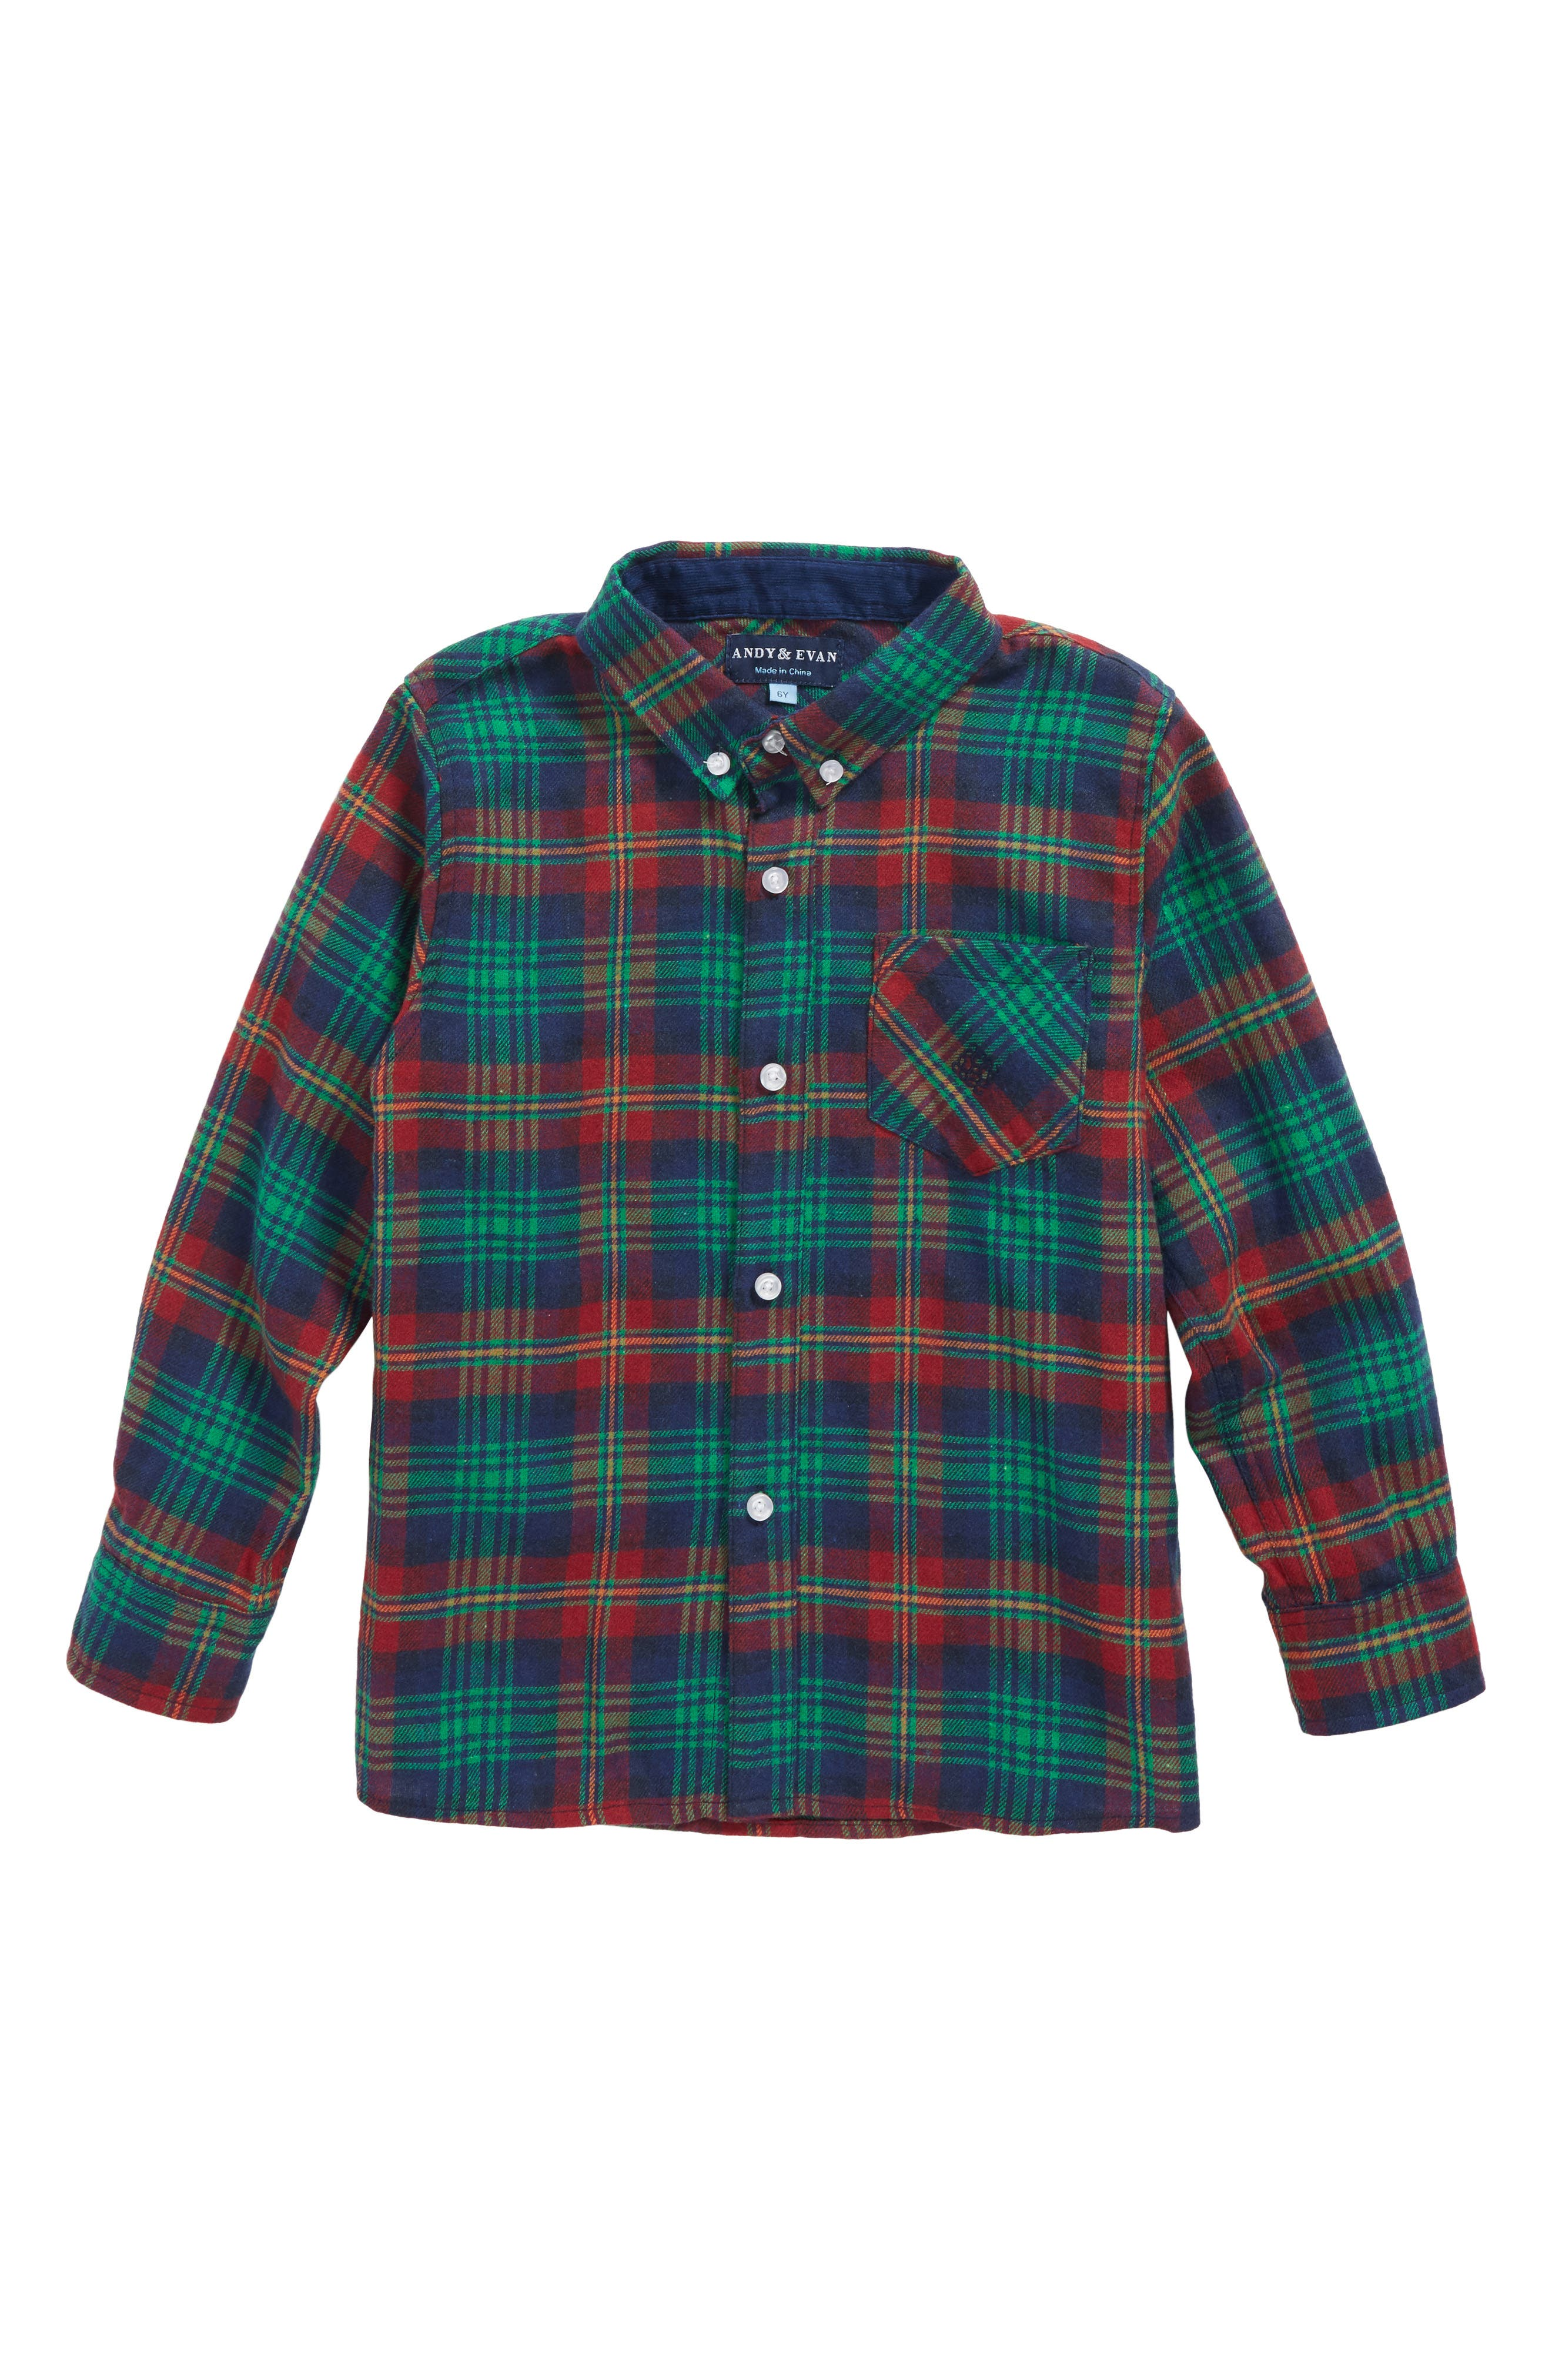 Andy & Evan Plaid Woven Shirt (Toddler Boys & Little Boys)